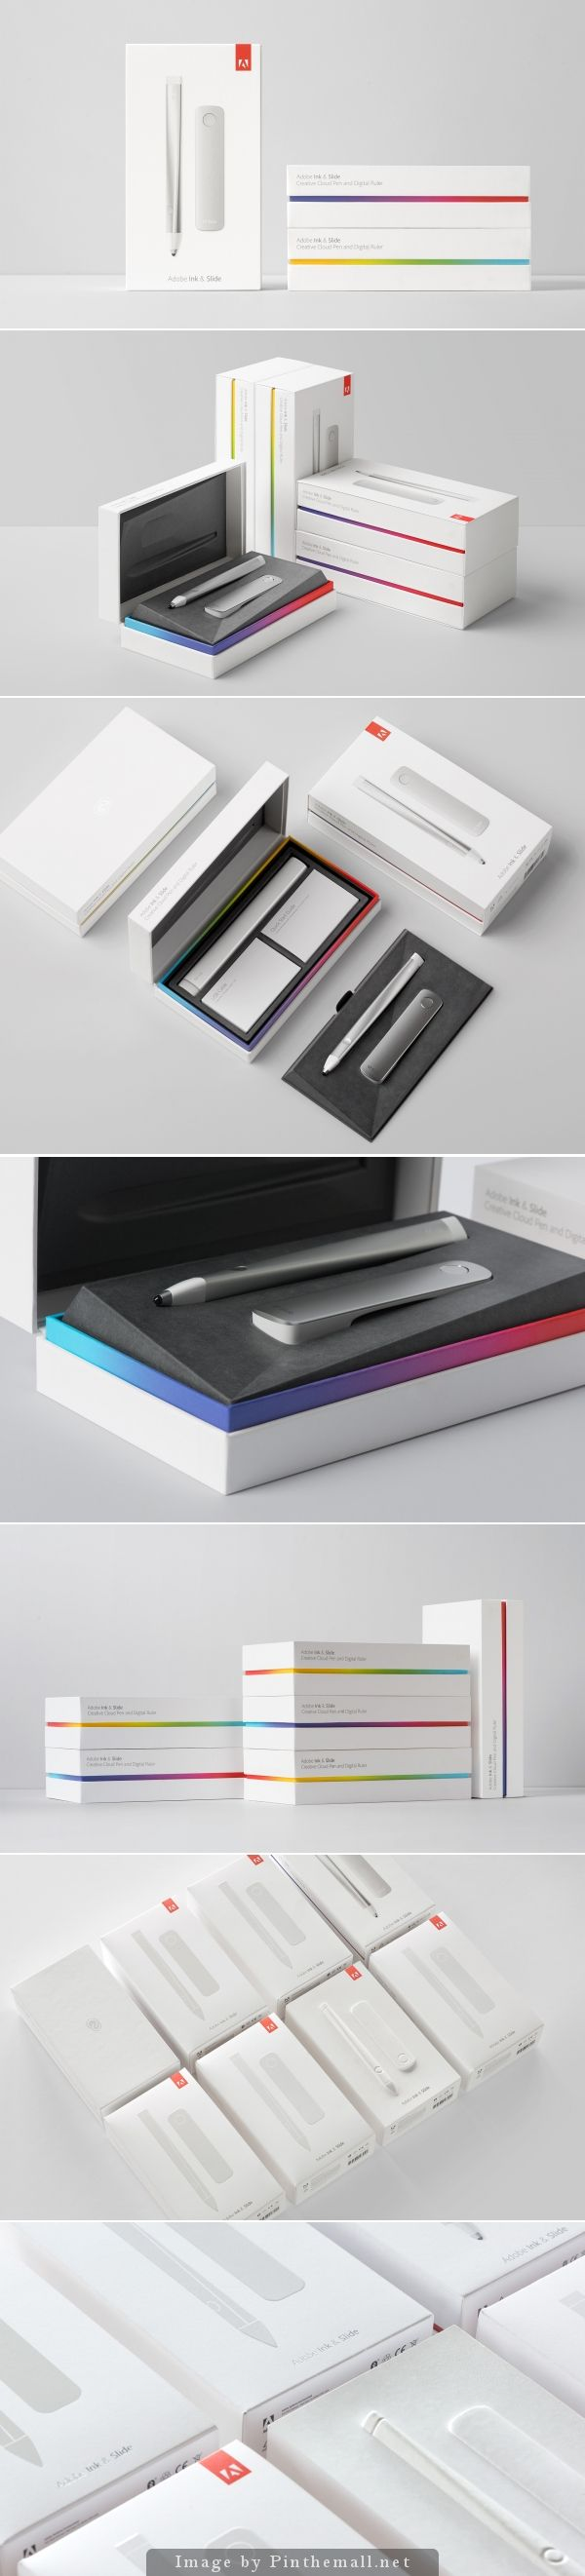 Adobe Ink Slide packaging. Lovely packaging design by Character PD